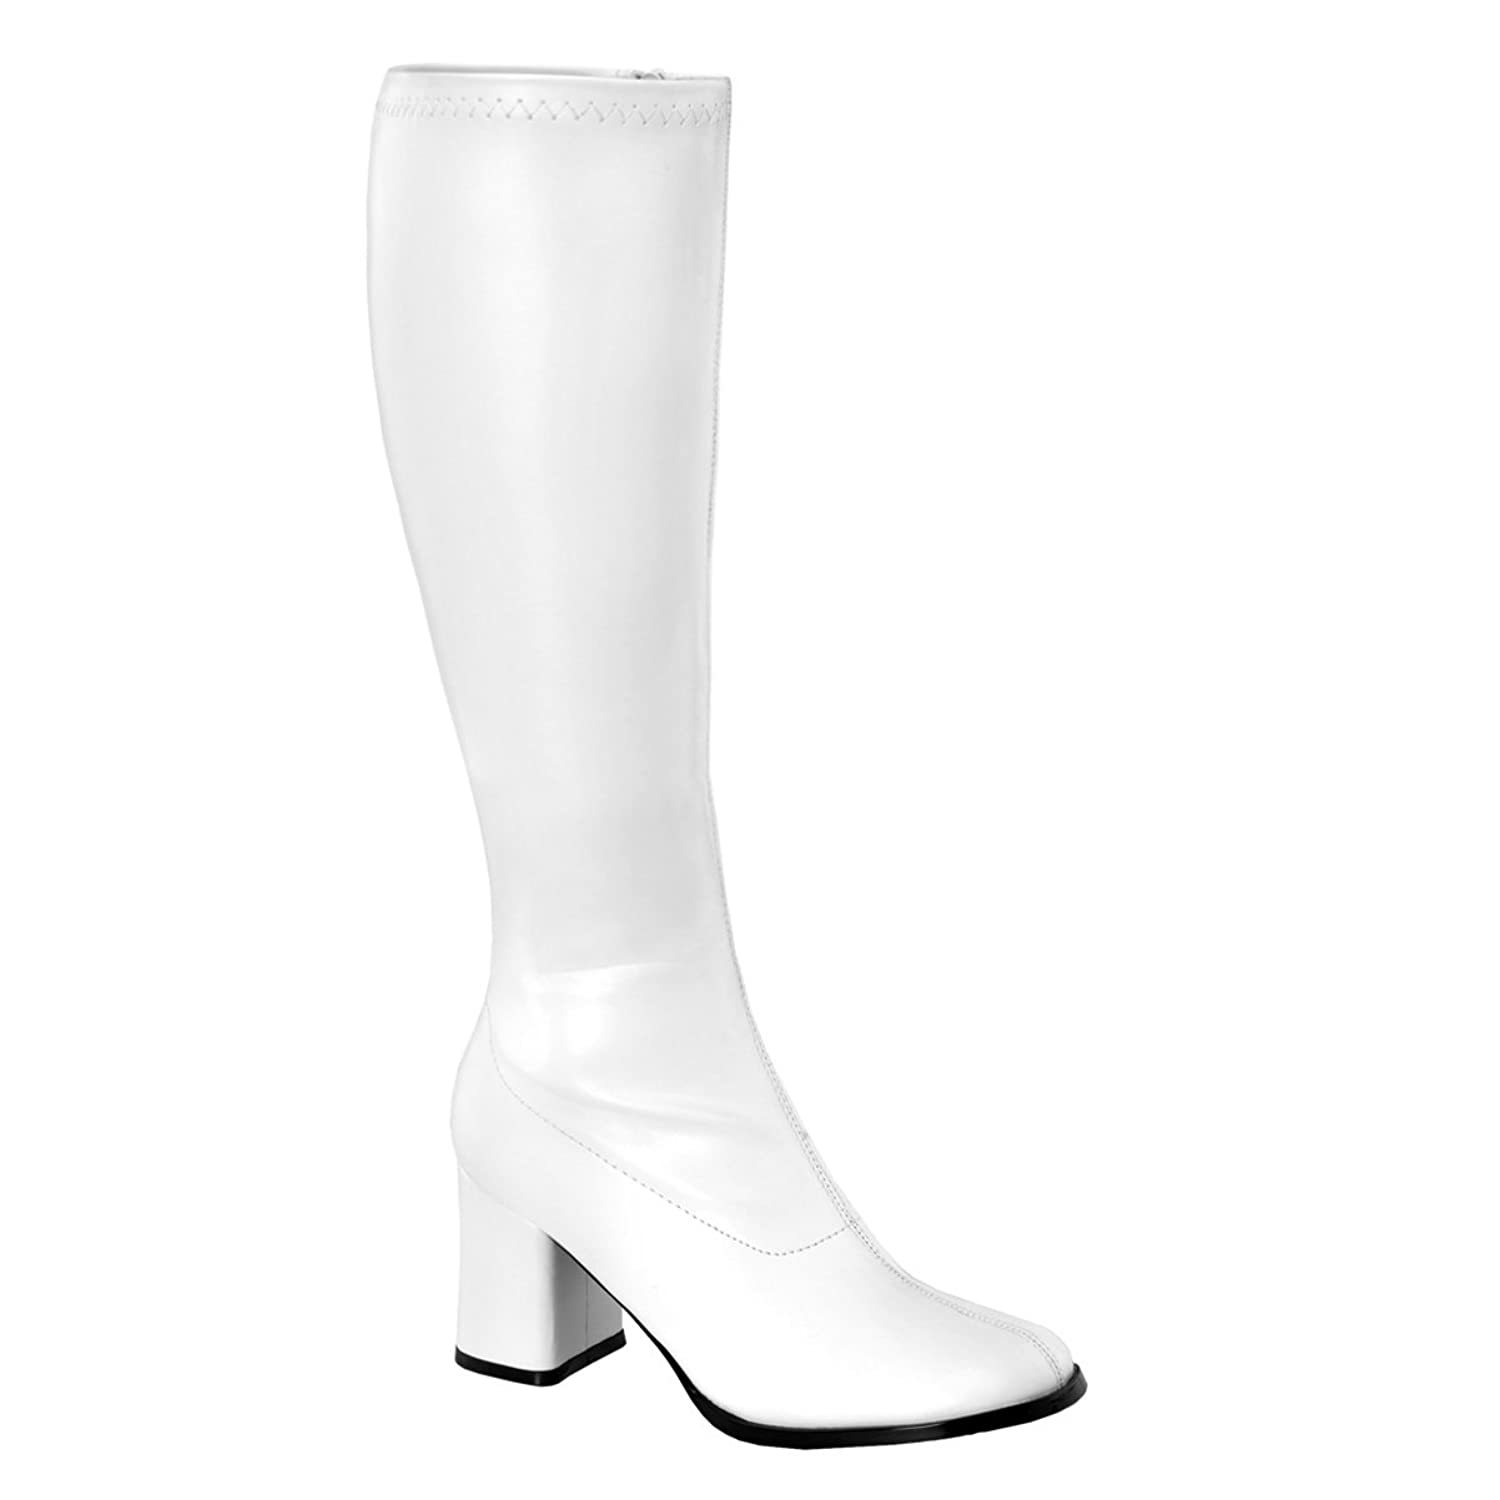 Womens Knee High Boots White GOGO 3 Inch WIDE CALF Sexy Block Heel Knee Boot Poly B002A1E0JO 12 B(M) US